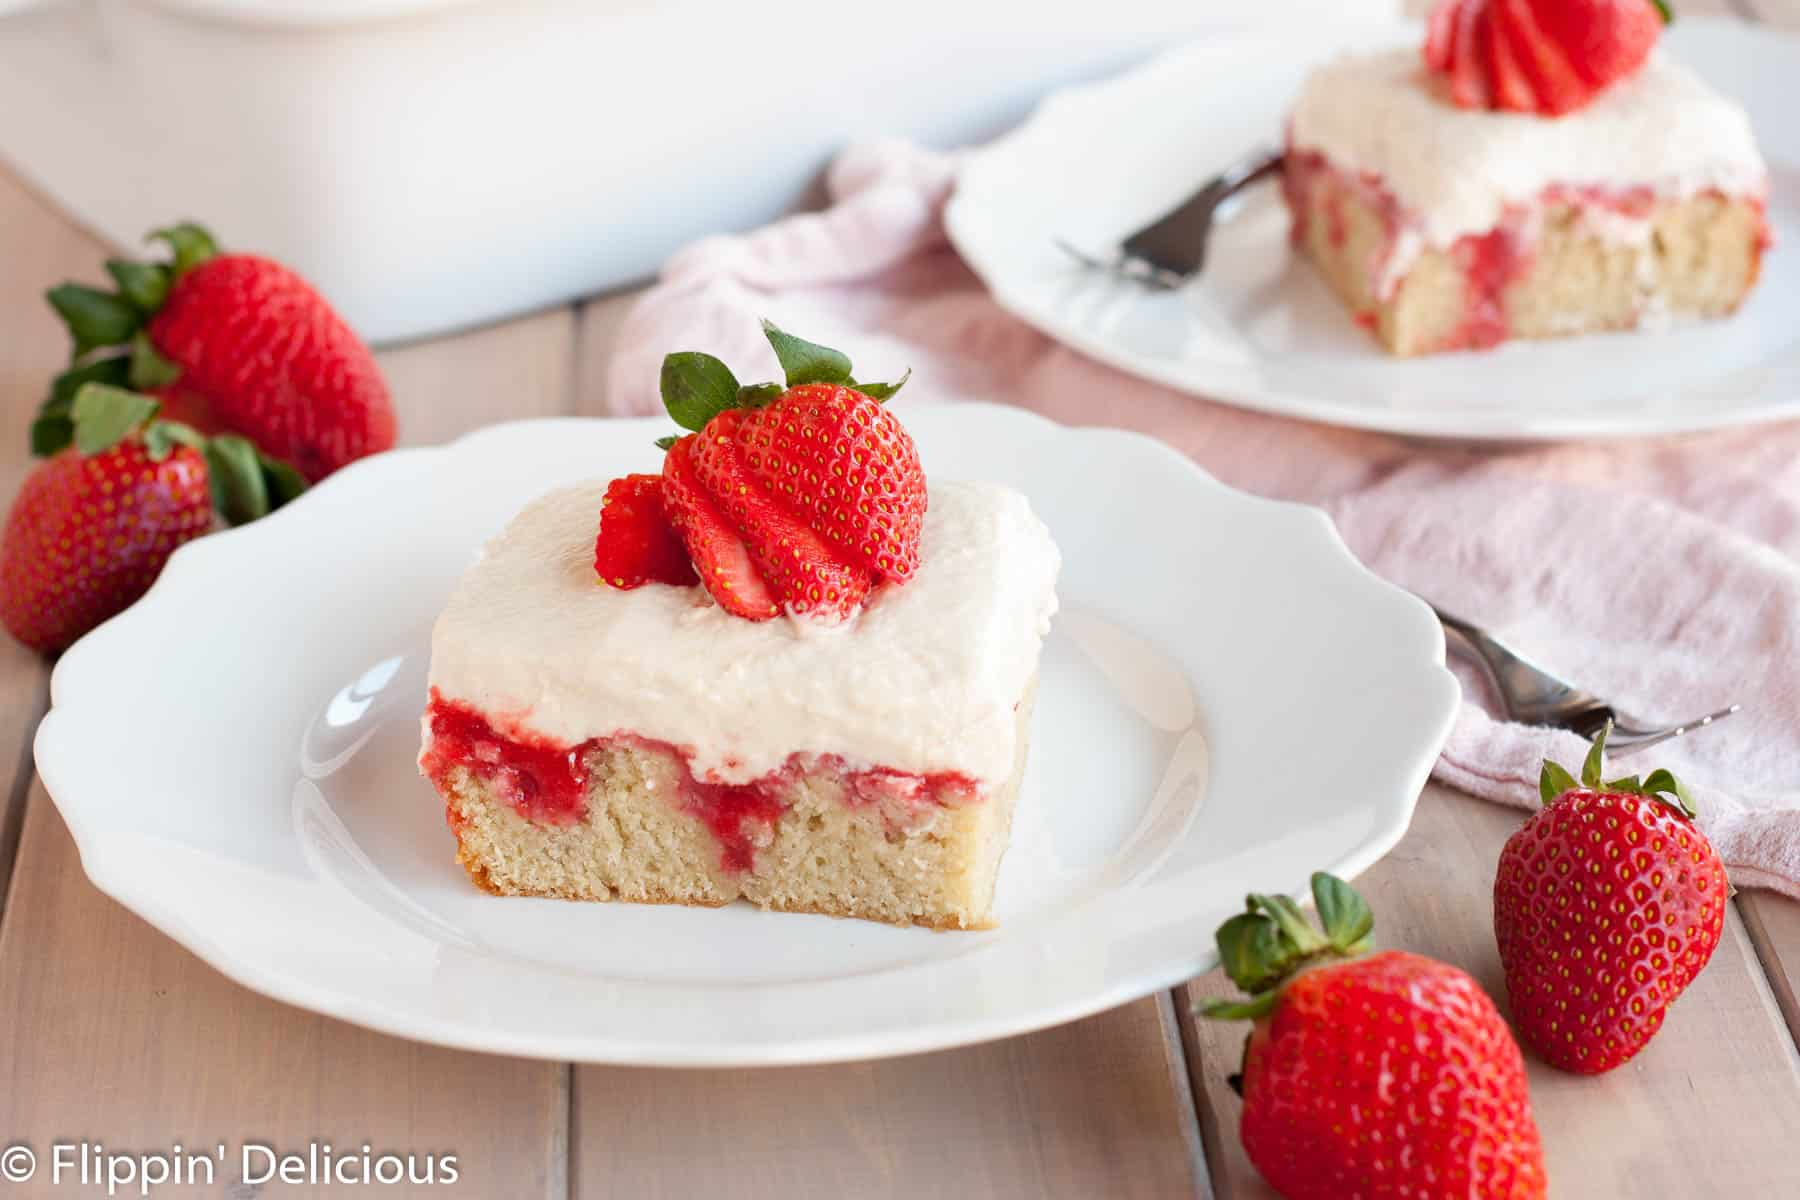 Dairy Free Gluten Free Strawberries and Cream Poke Cake makes an easy crowd-pleasing dessert.